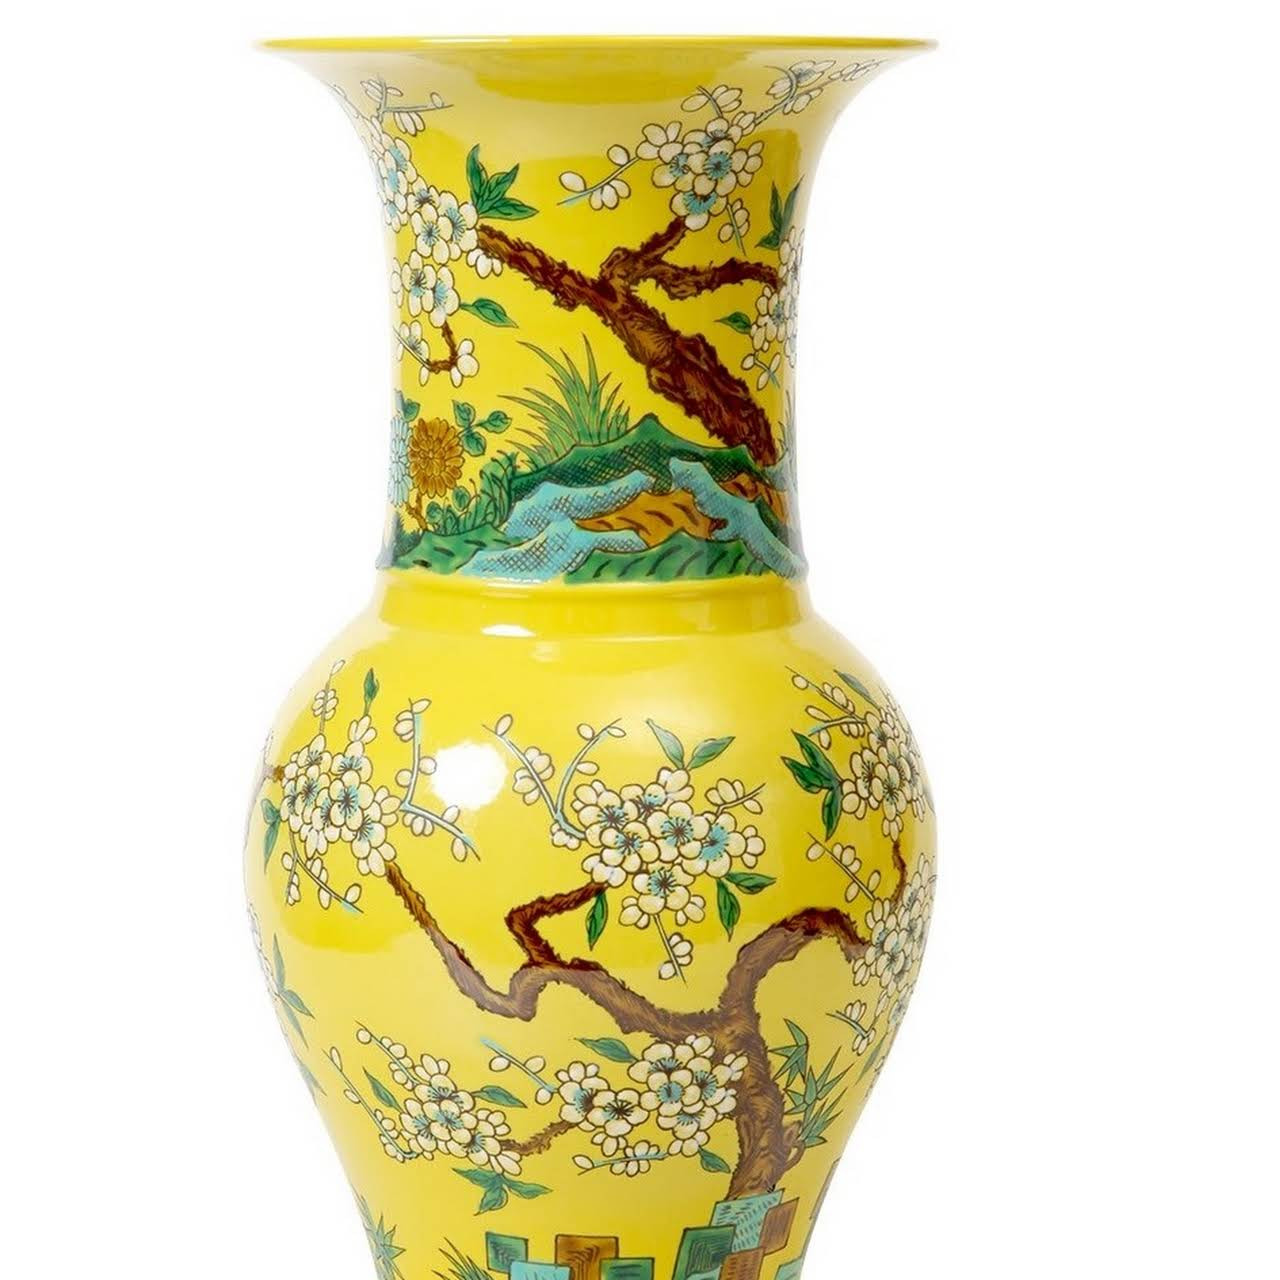 yellow pottery vase of instyle decor hollywood luxury furniture lighting decor gifts with regard to yellow vase yel